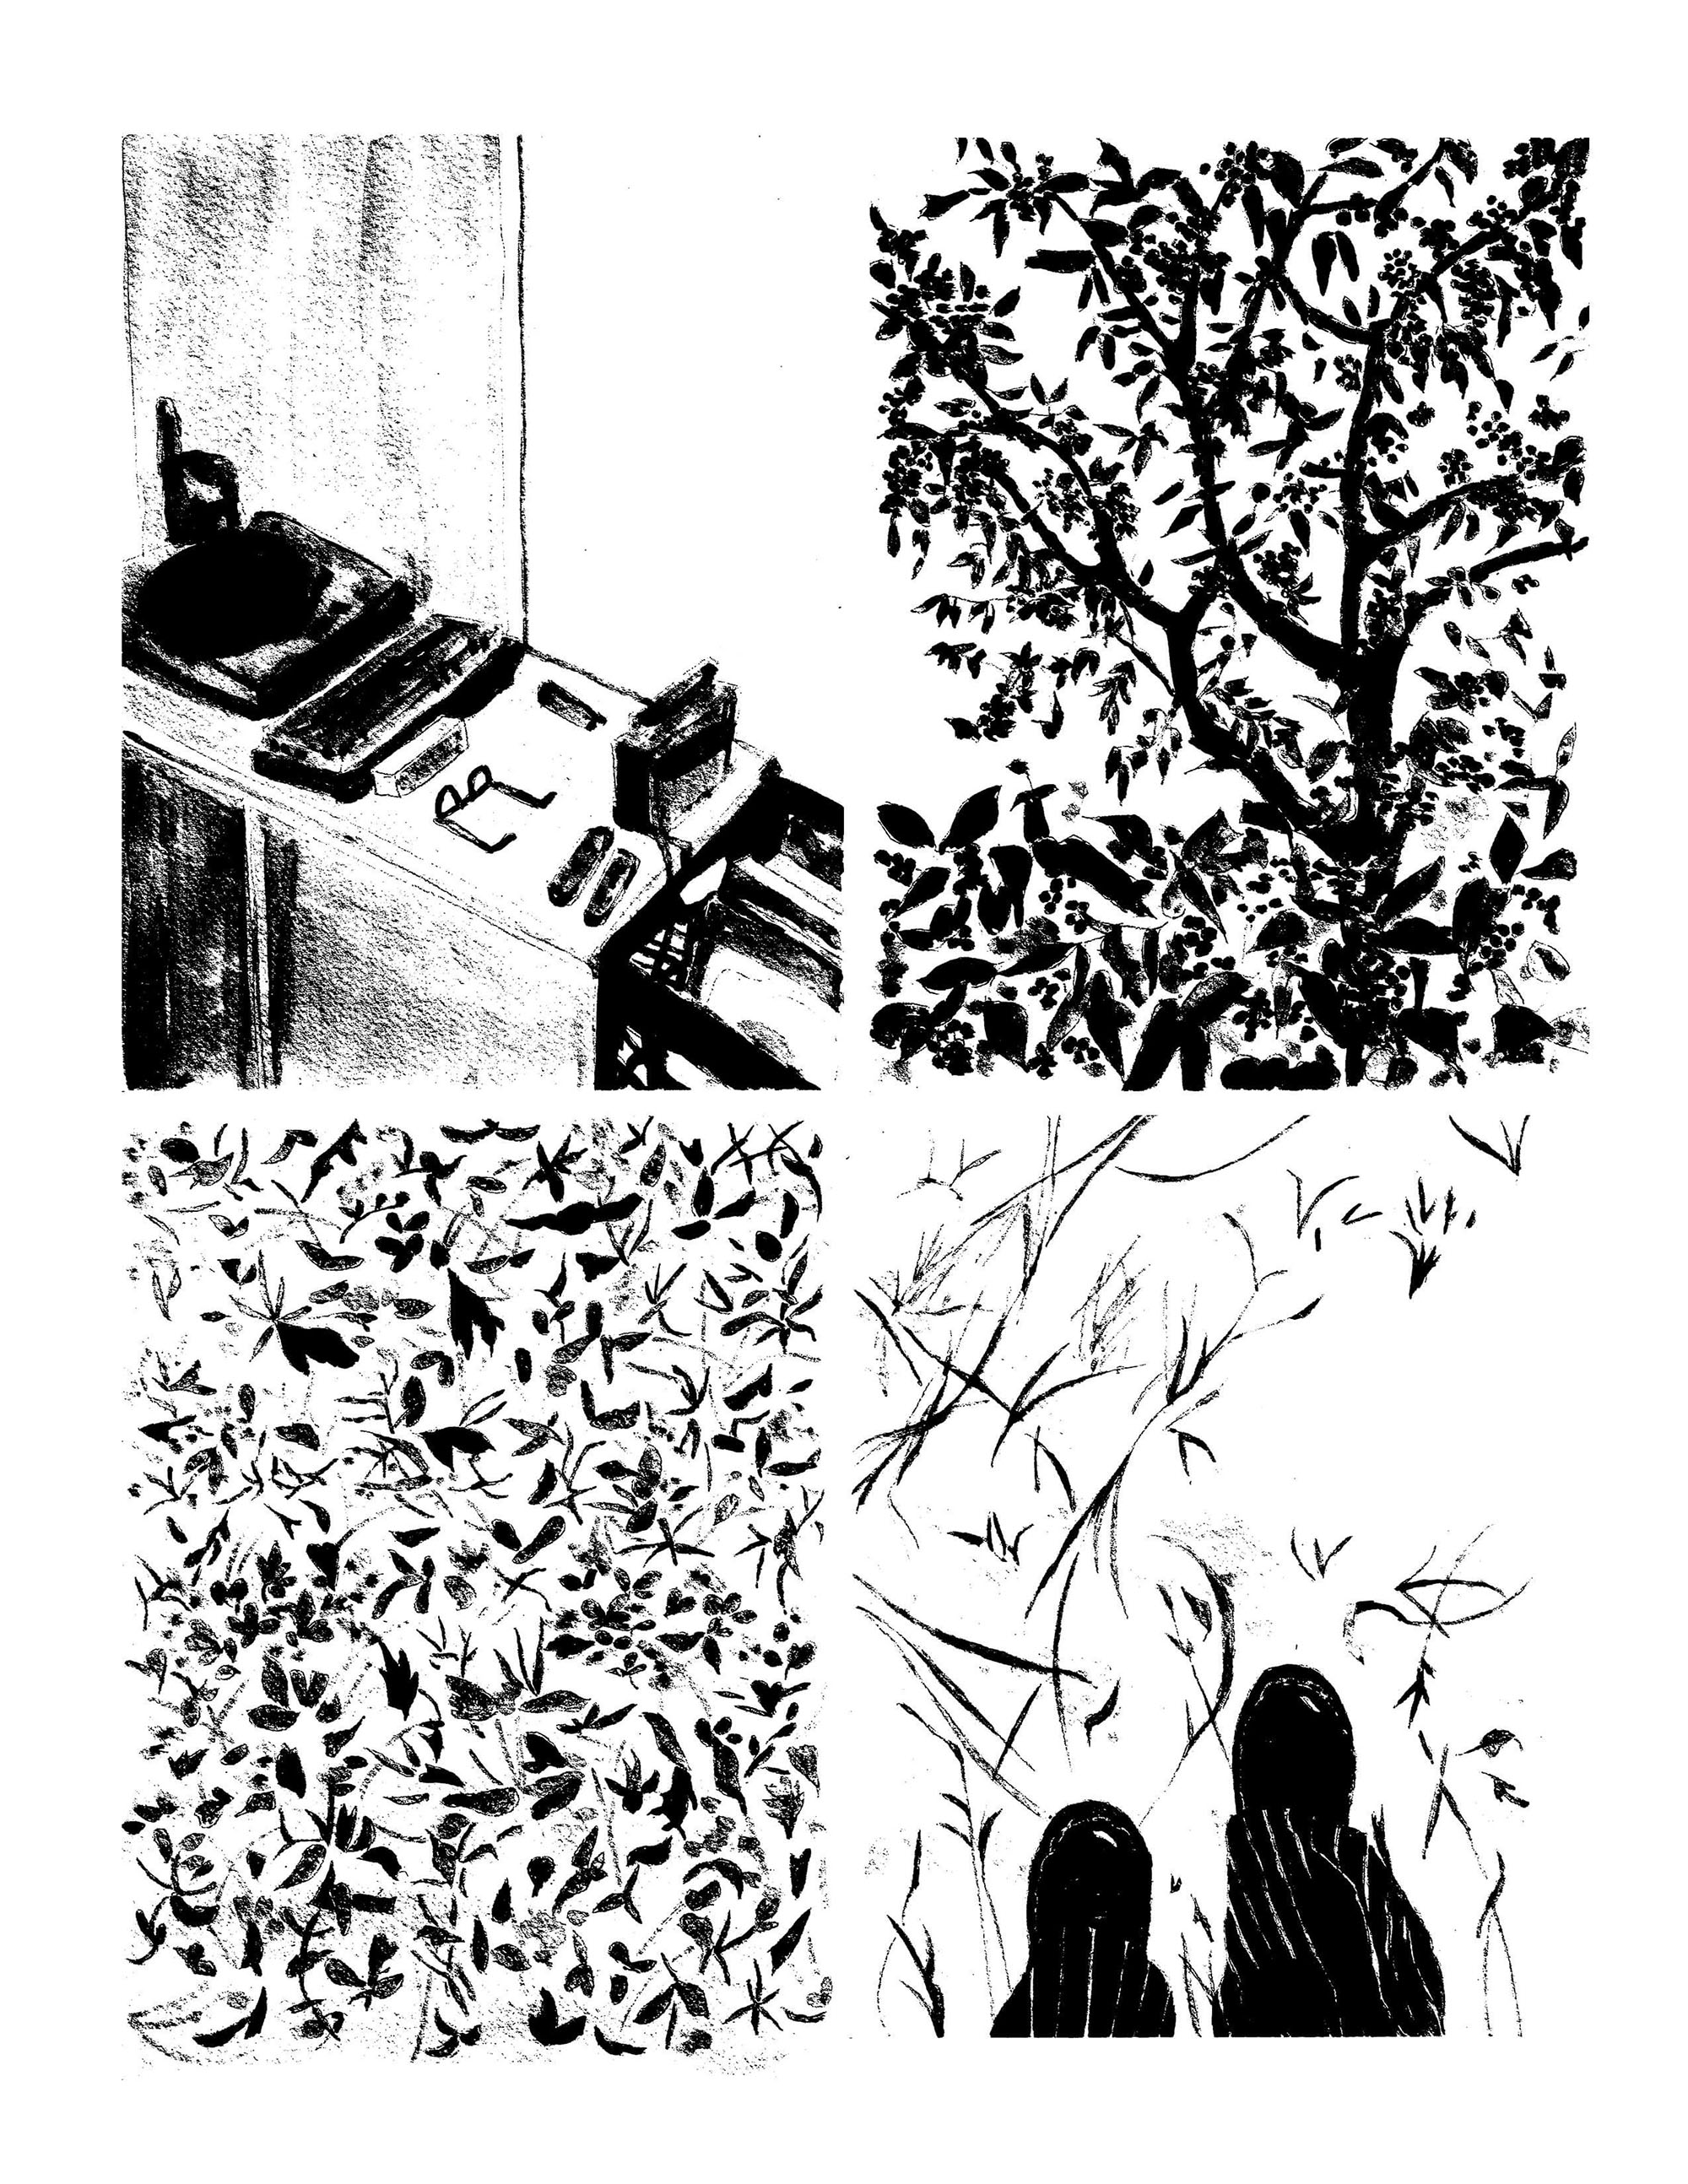 Grid of four black and white illustrations of: a desk with office objects on it; a tree with birds; leaves with insects; and two silhouettes of people in front of long grass.